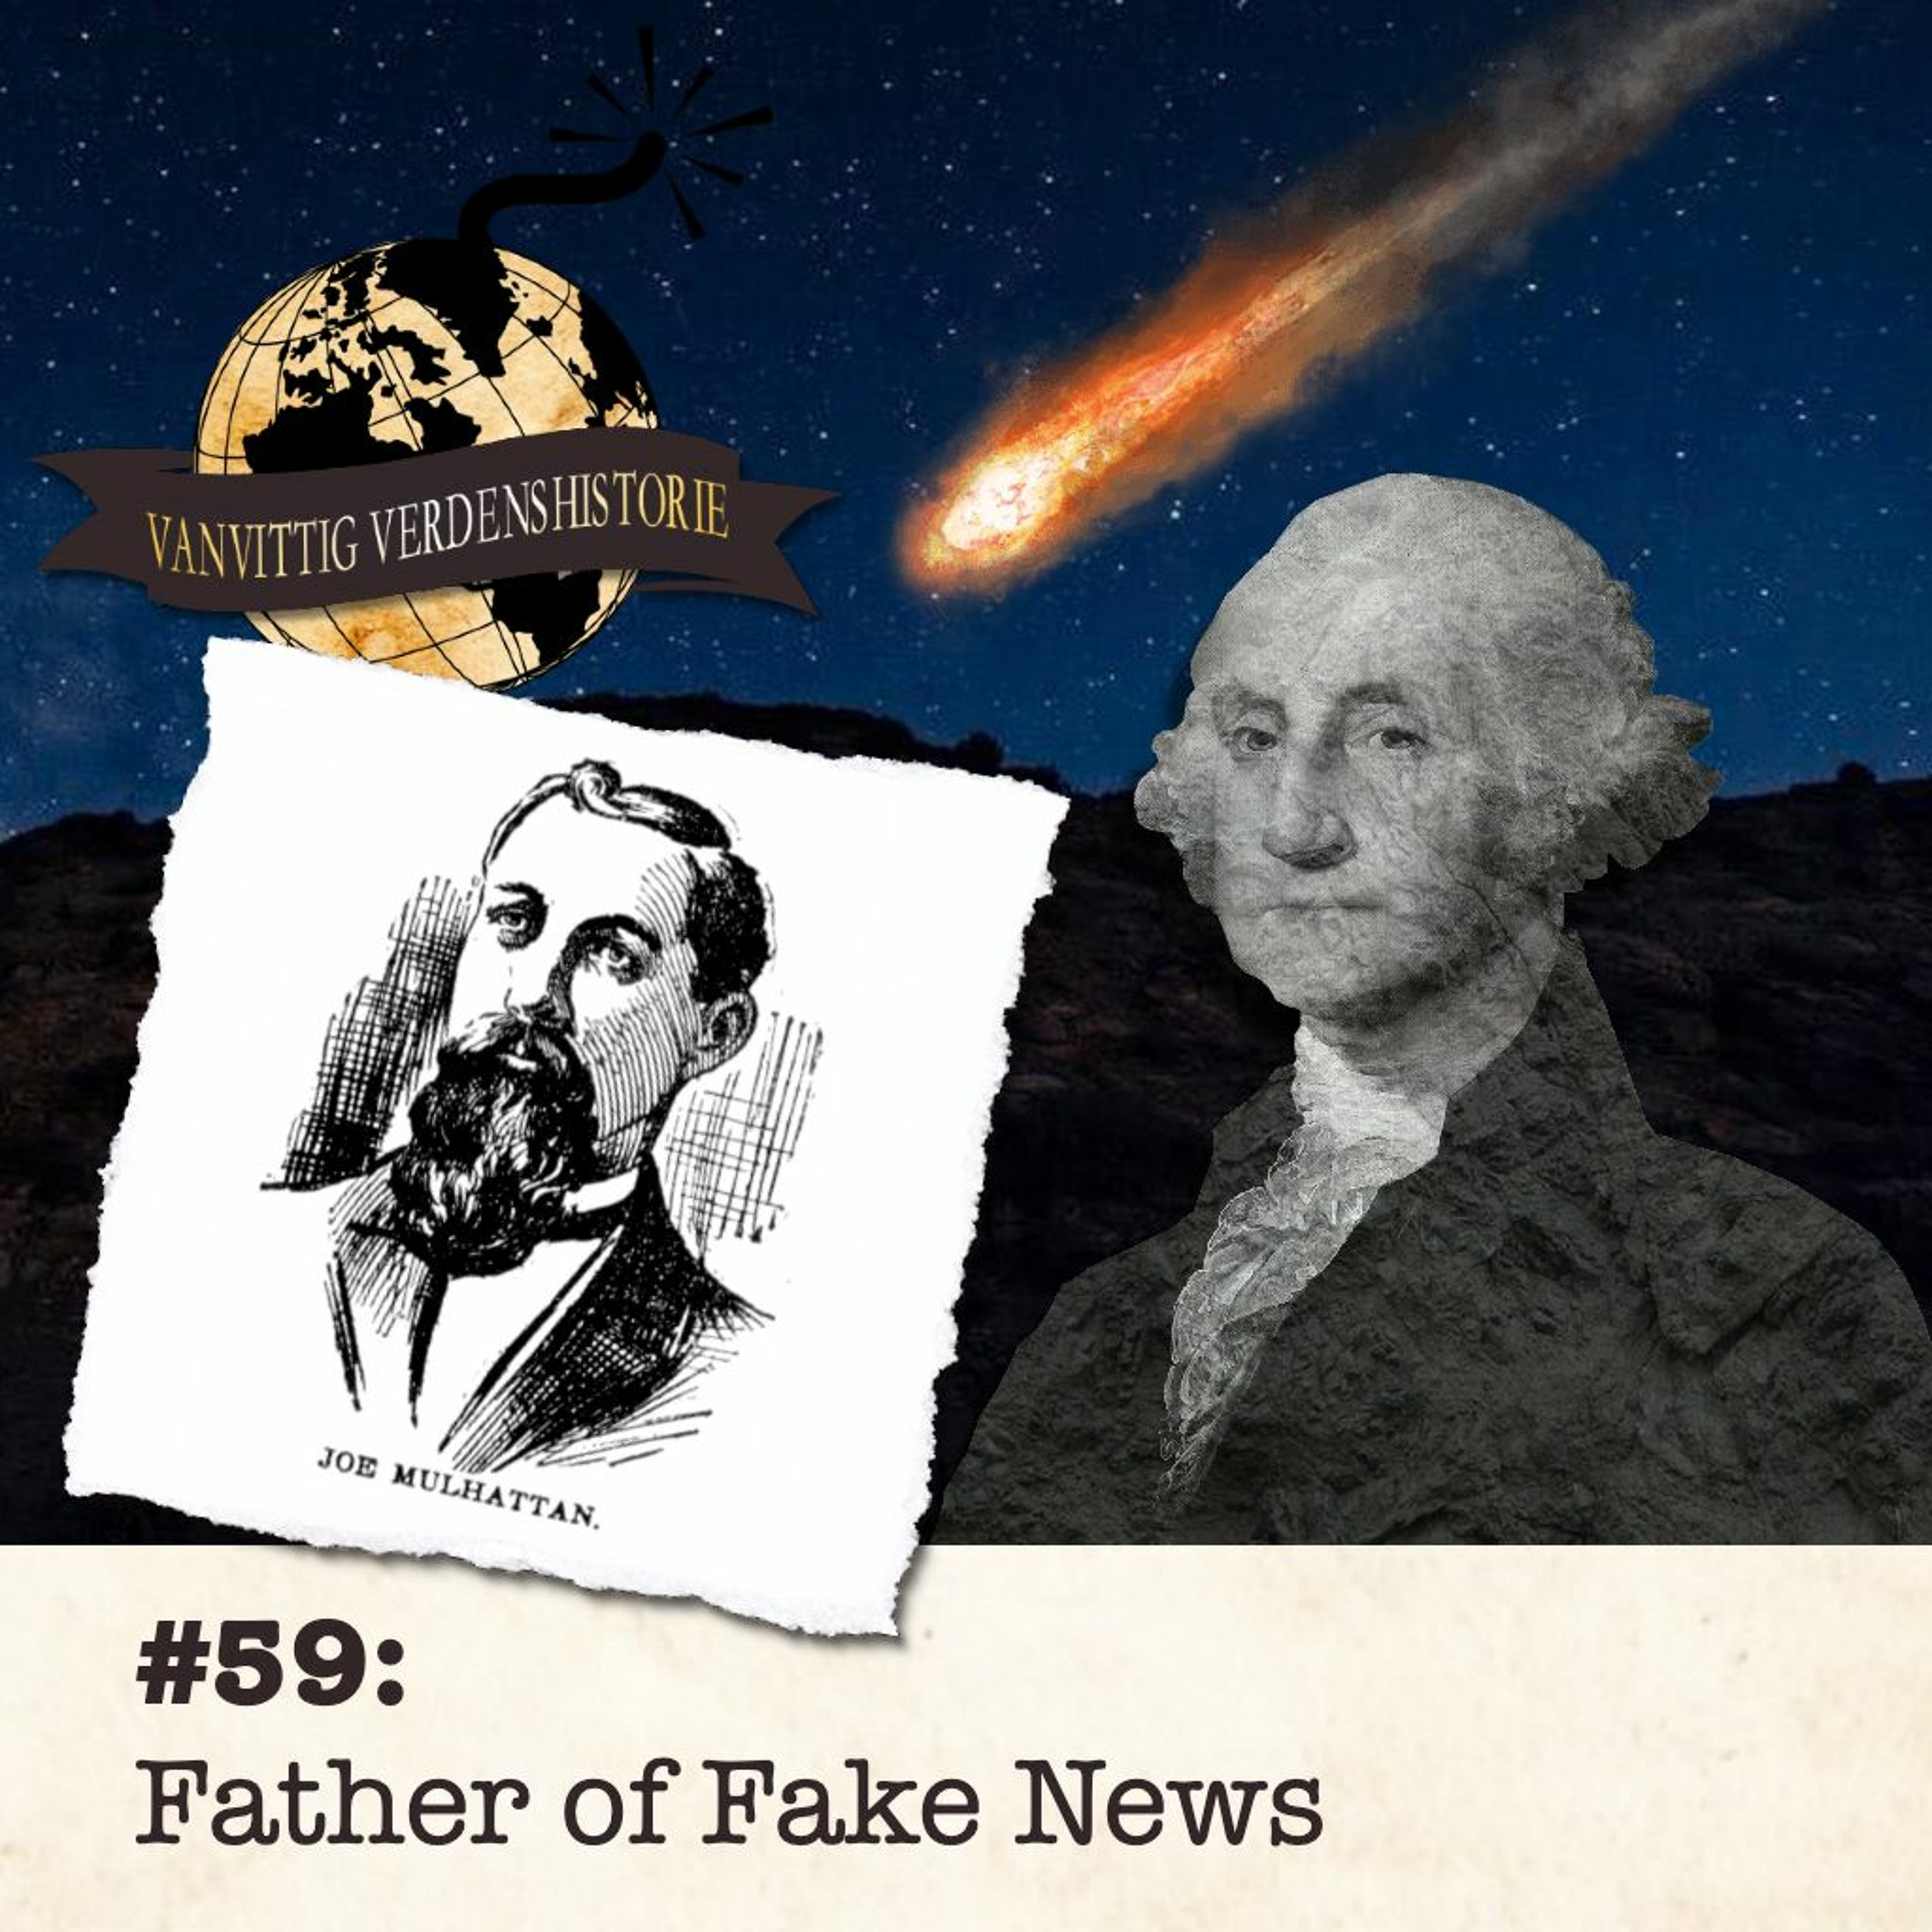 #59: Father of Fake News